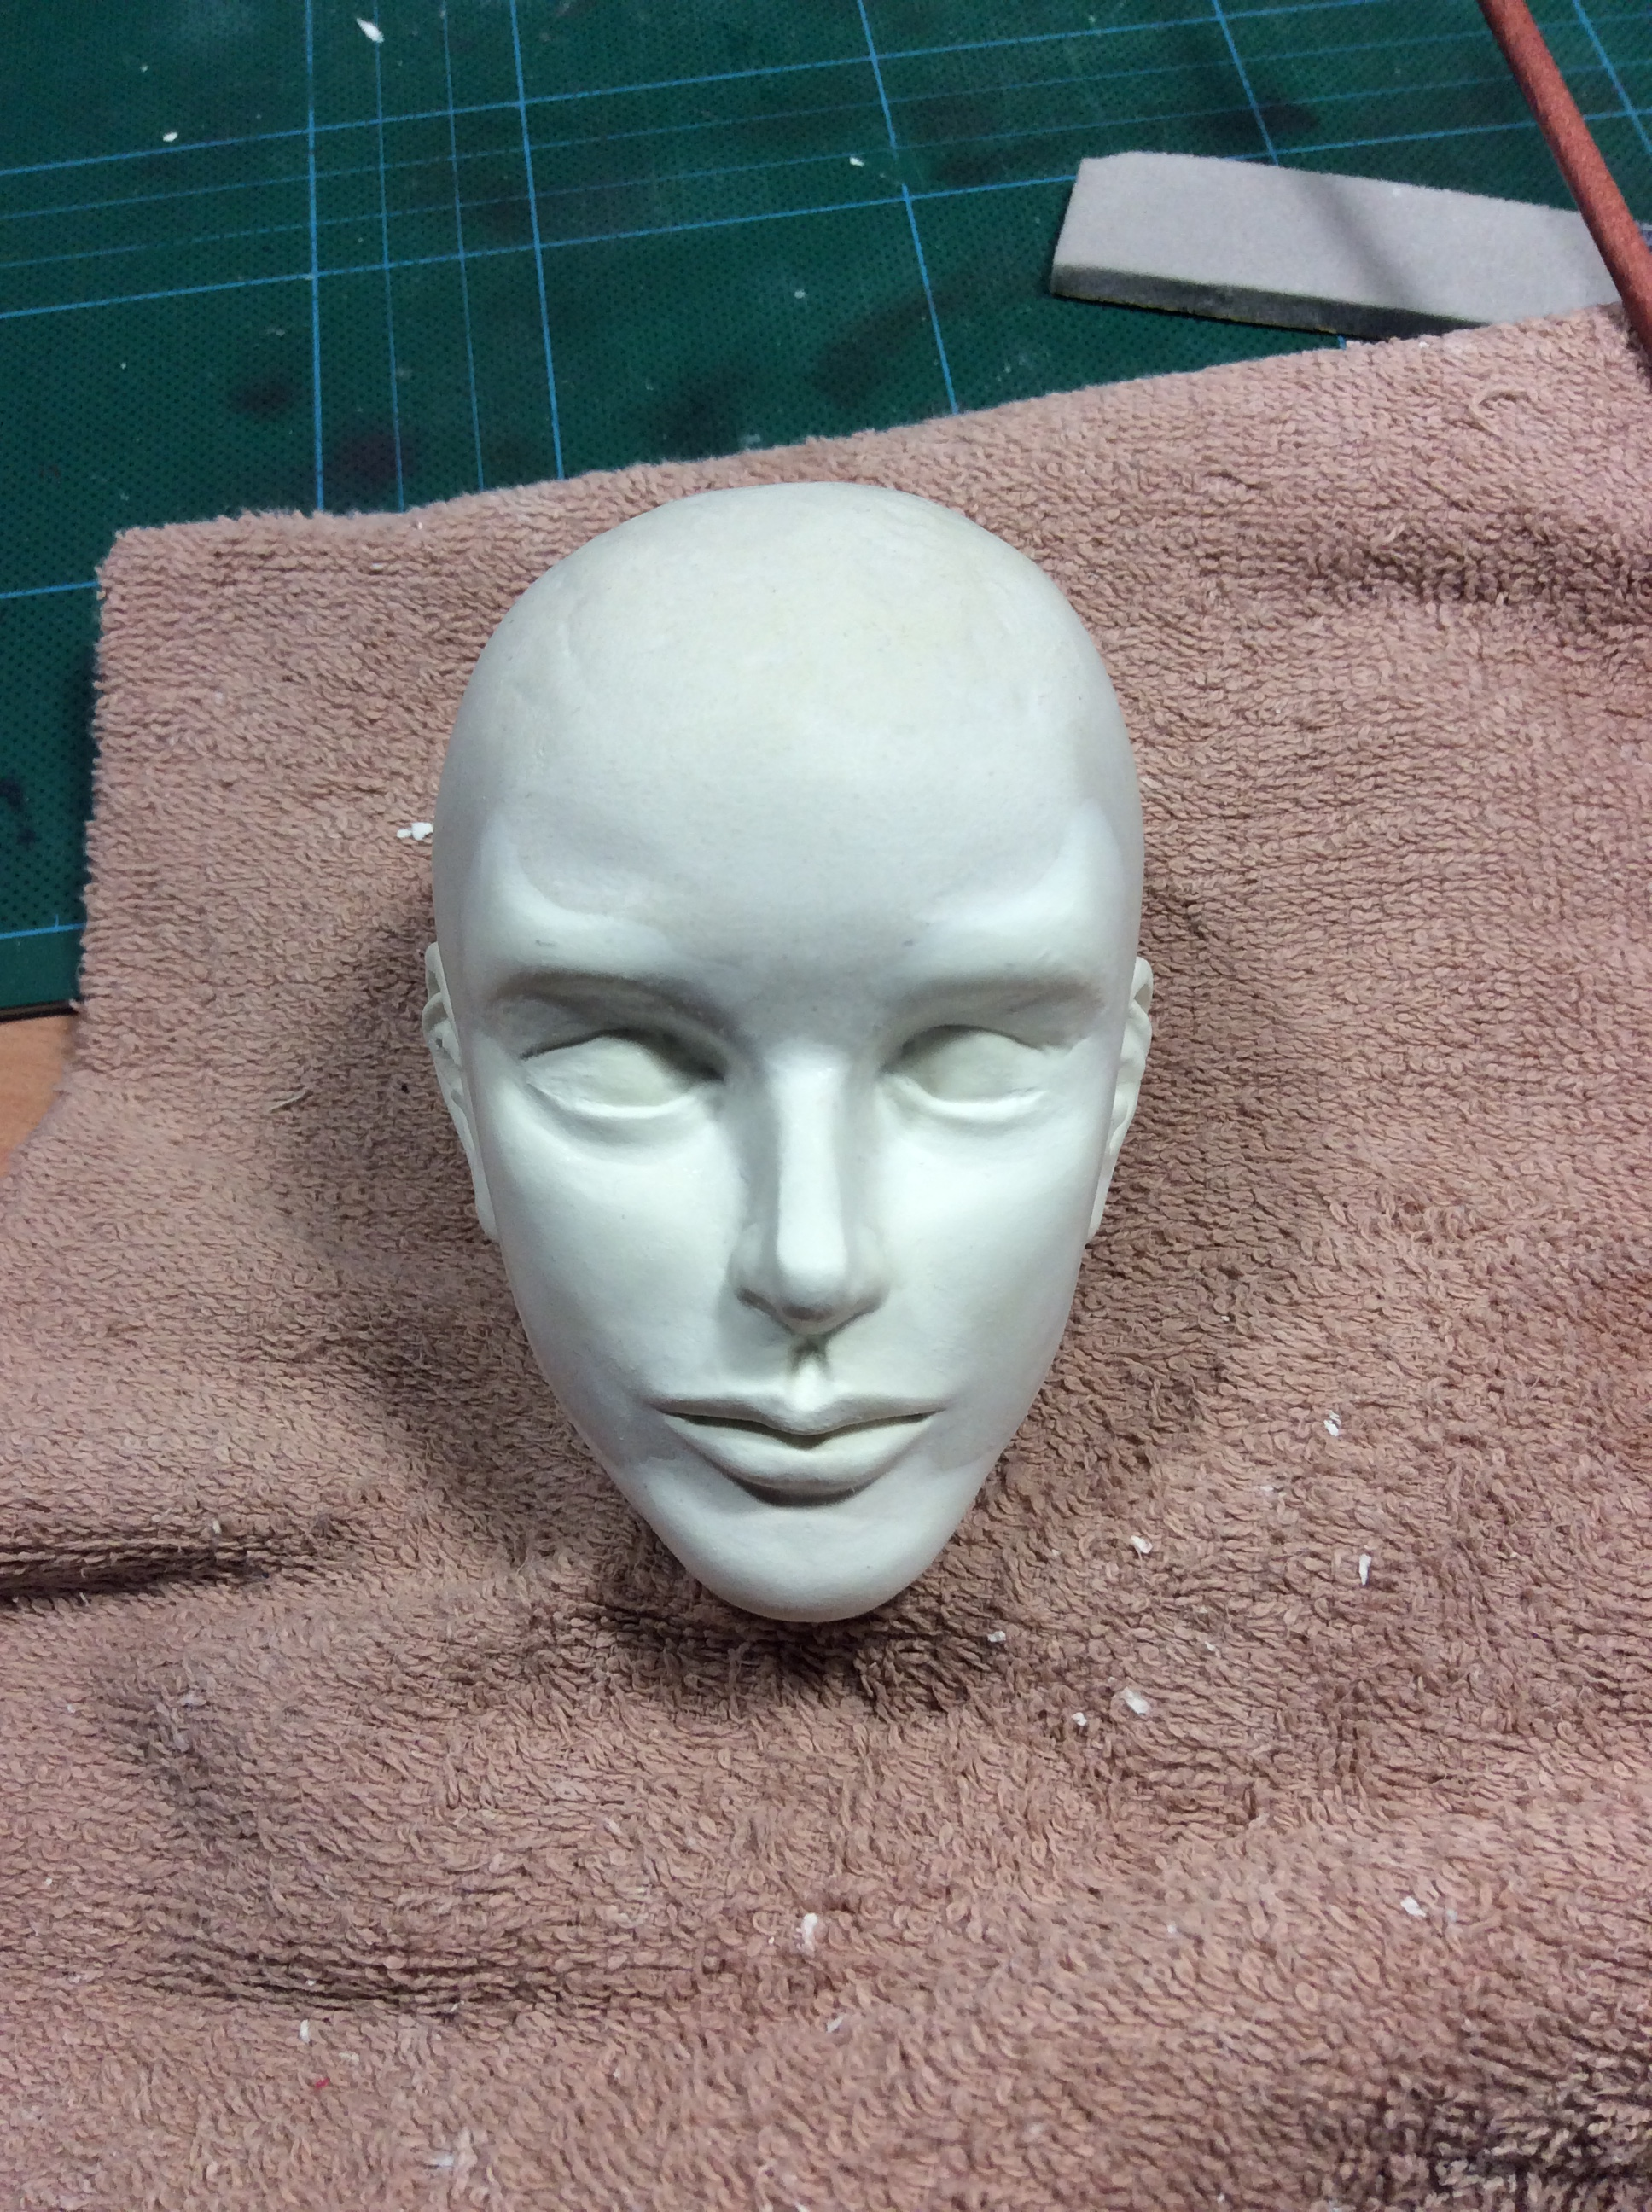 jemse---my-first-doll-head-making-progress-diary-part-3_31602561133_o